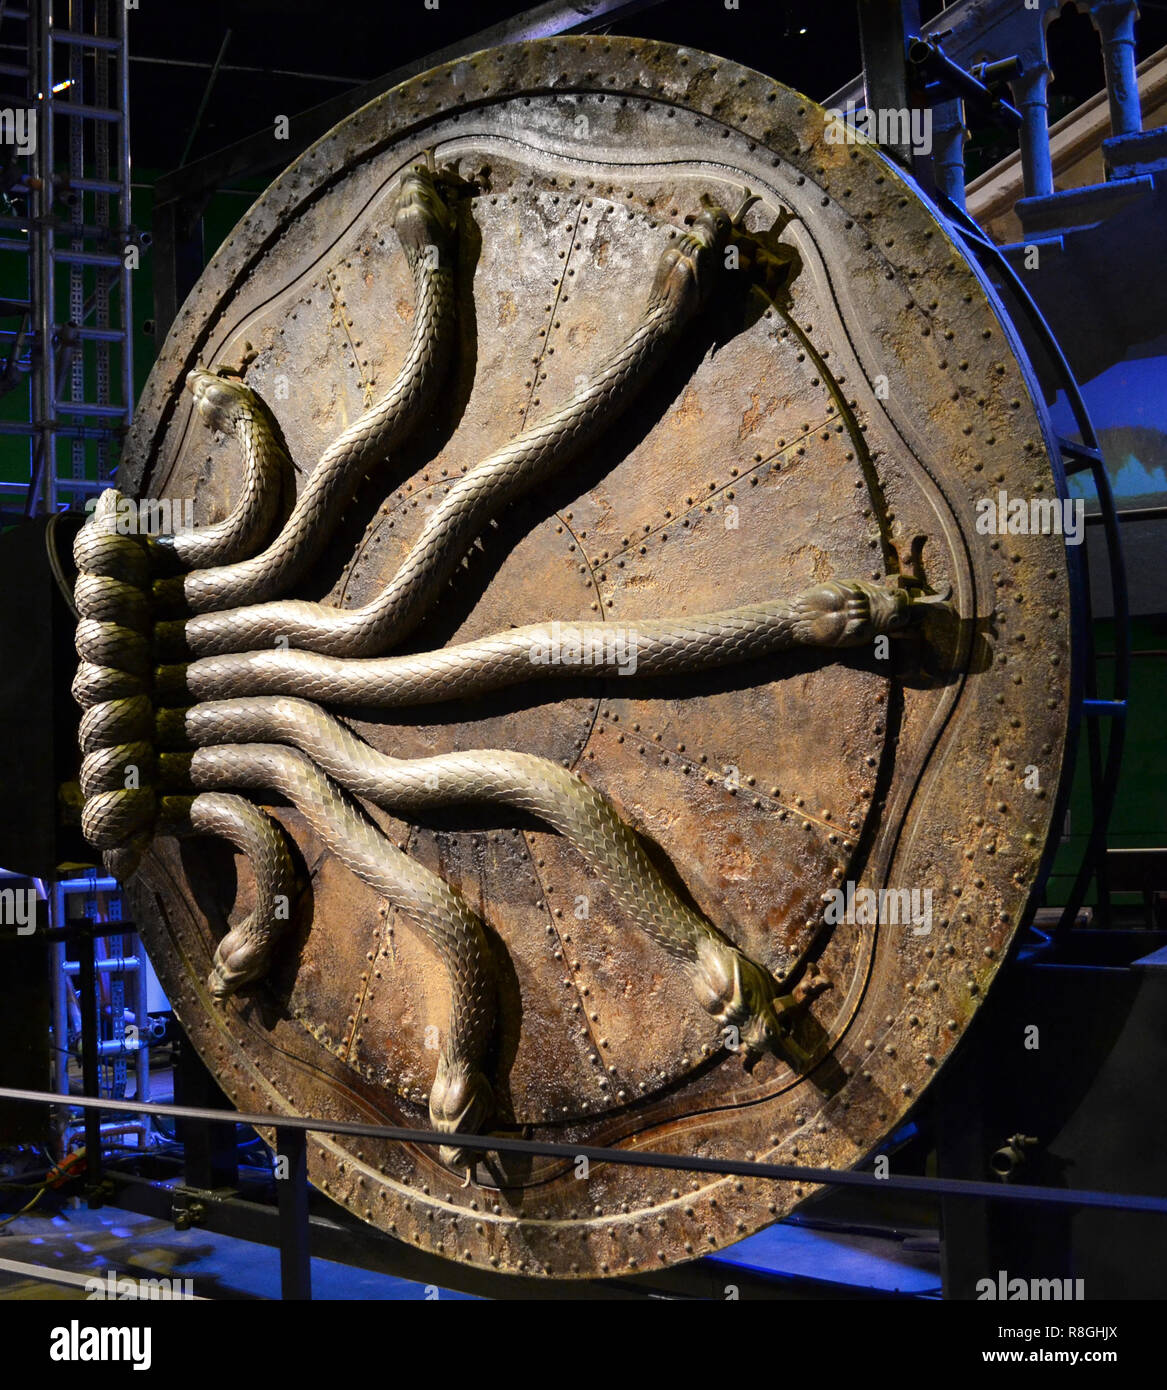 Door to the Chamber of Secrets at the Harry Potter Studios at Leavesden, London, UK Stock Photo